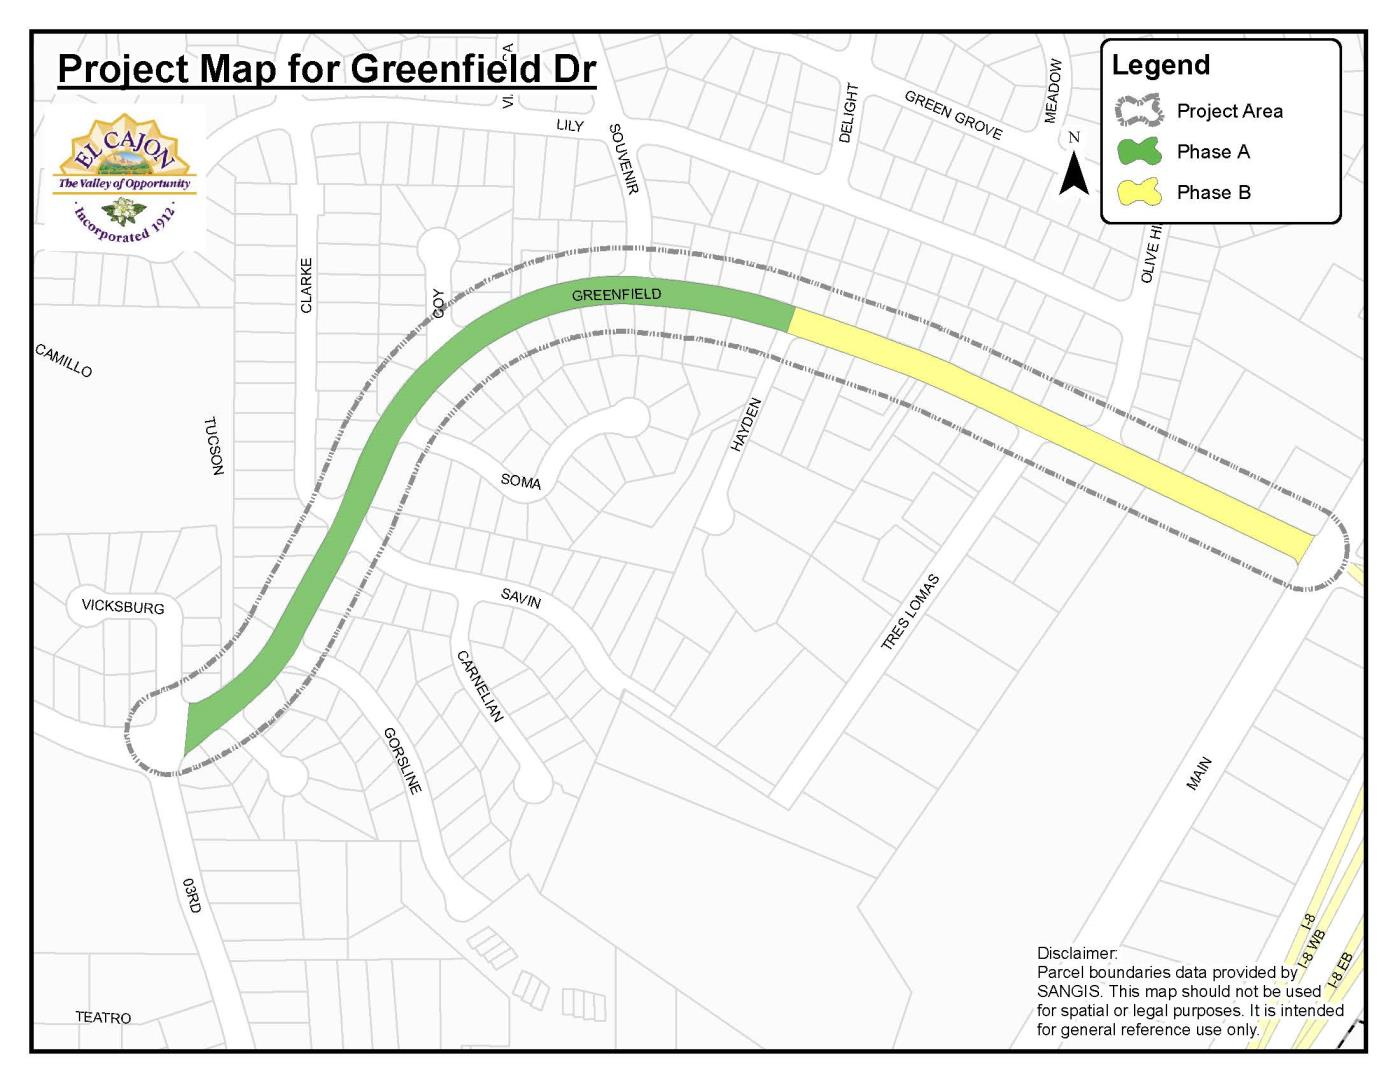 Project Map for Greenfield Drive